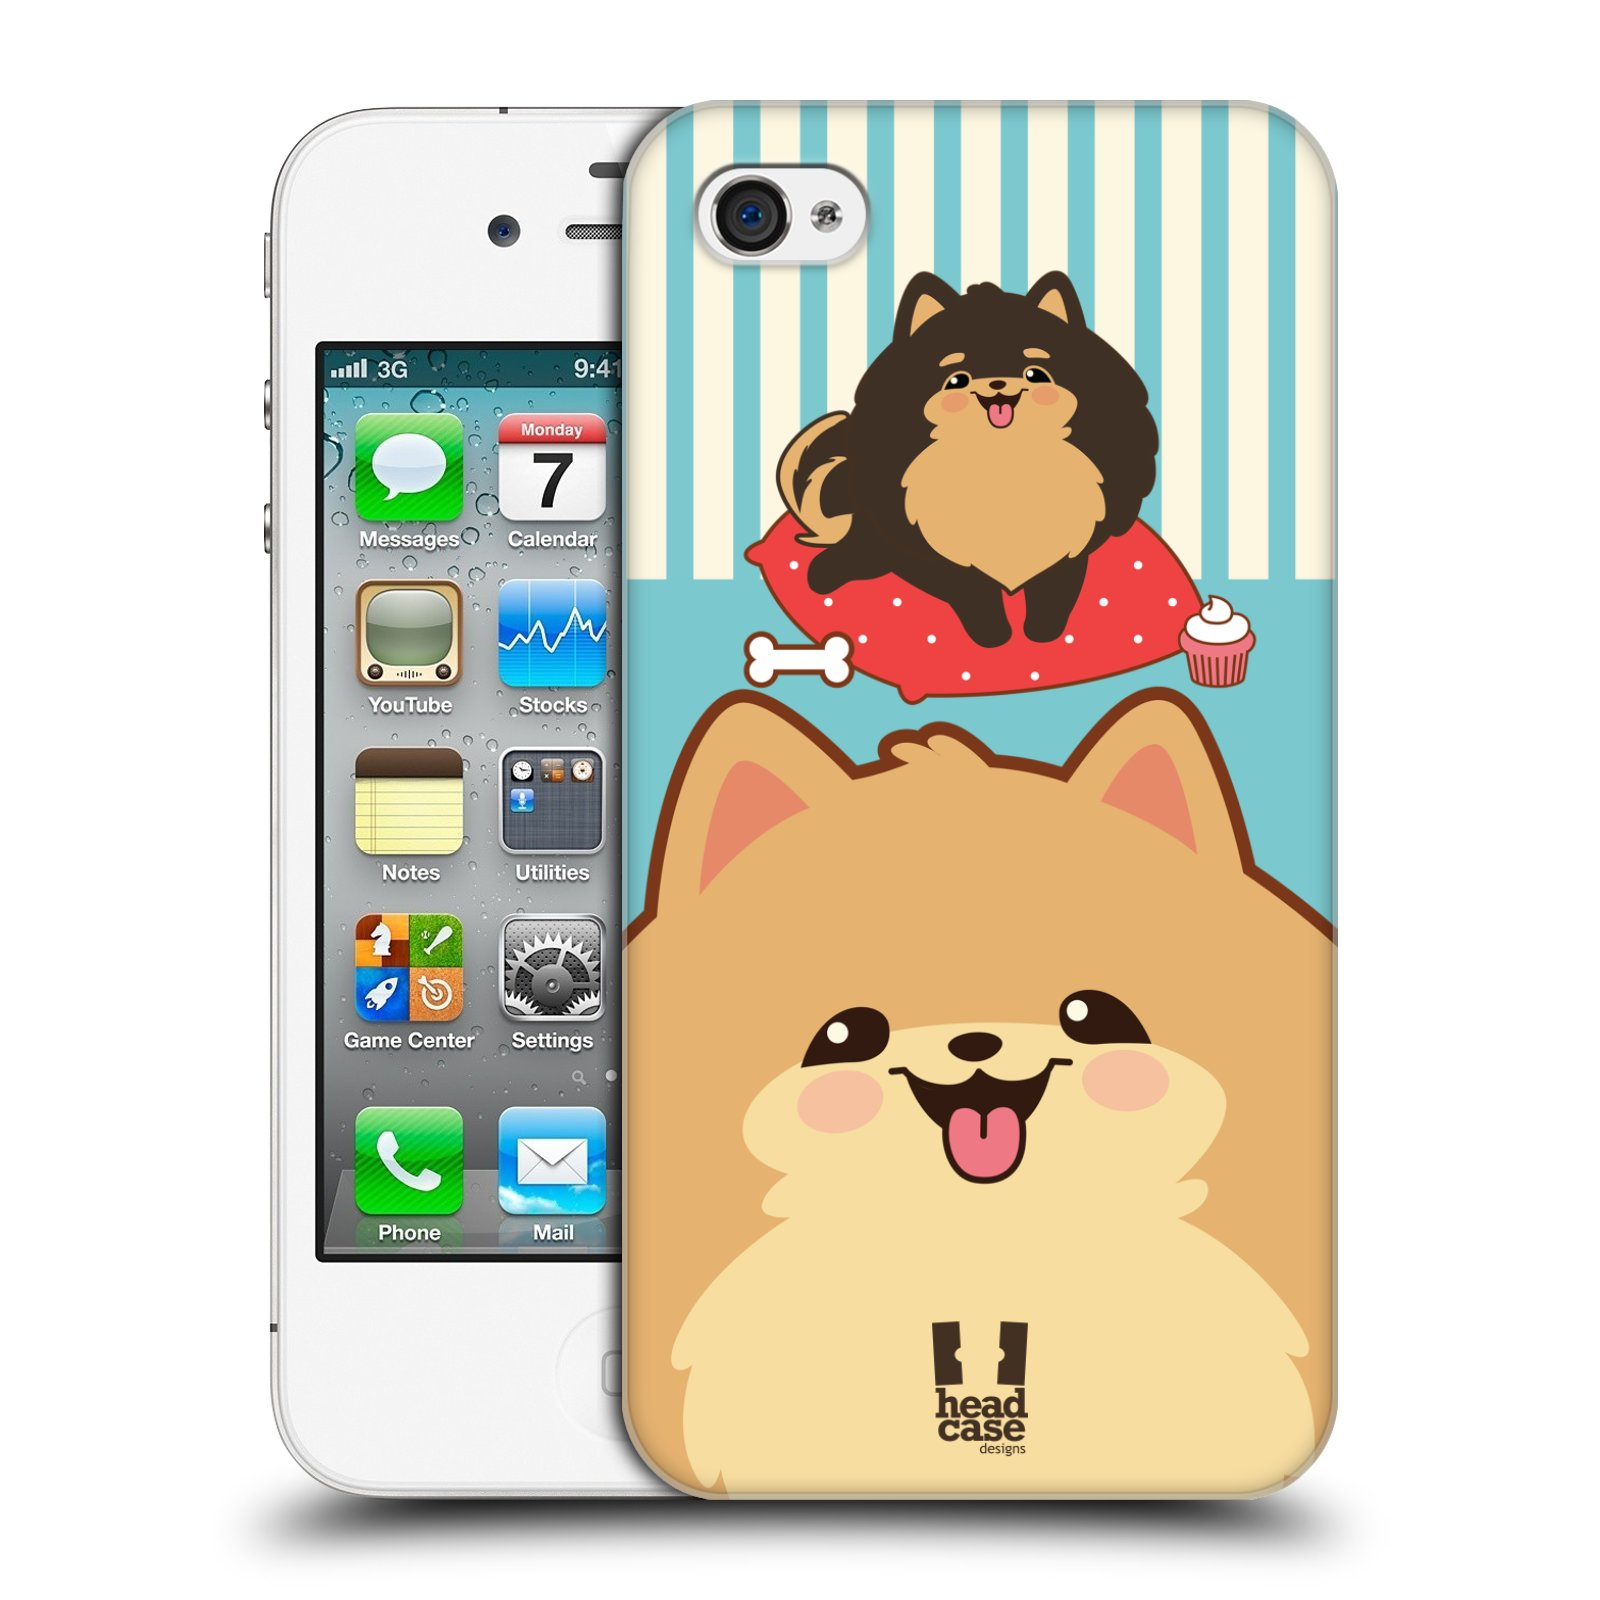 HEAD CASE DESIGNS COCO POM HARD BACK CASE FOR APPLE iPHONE 4